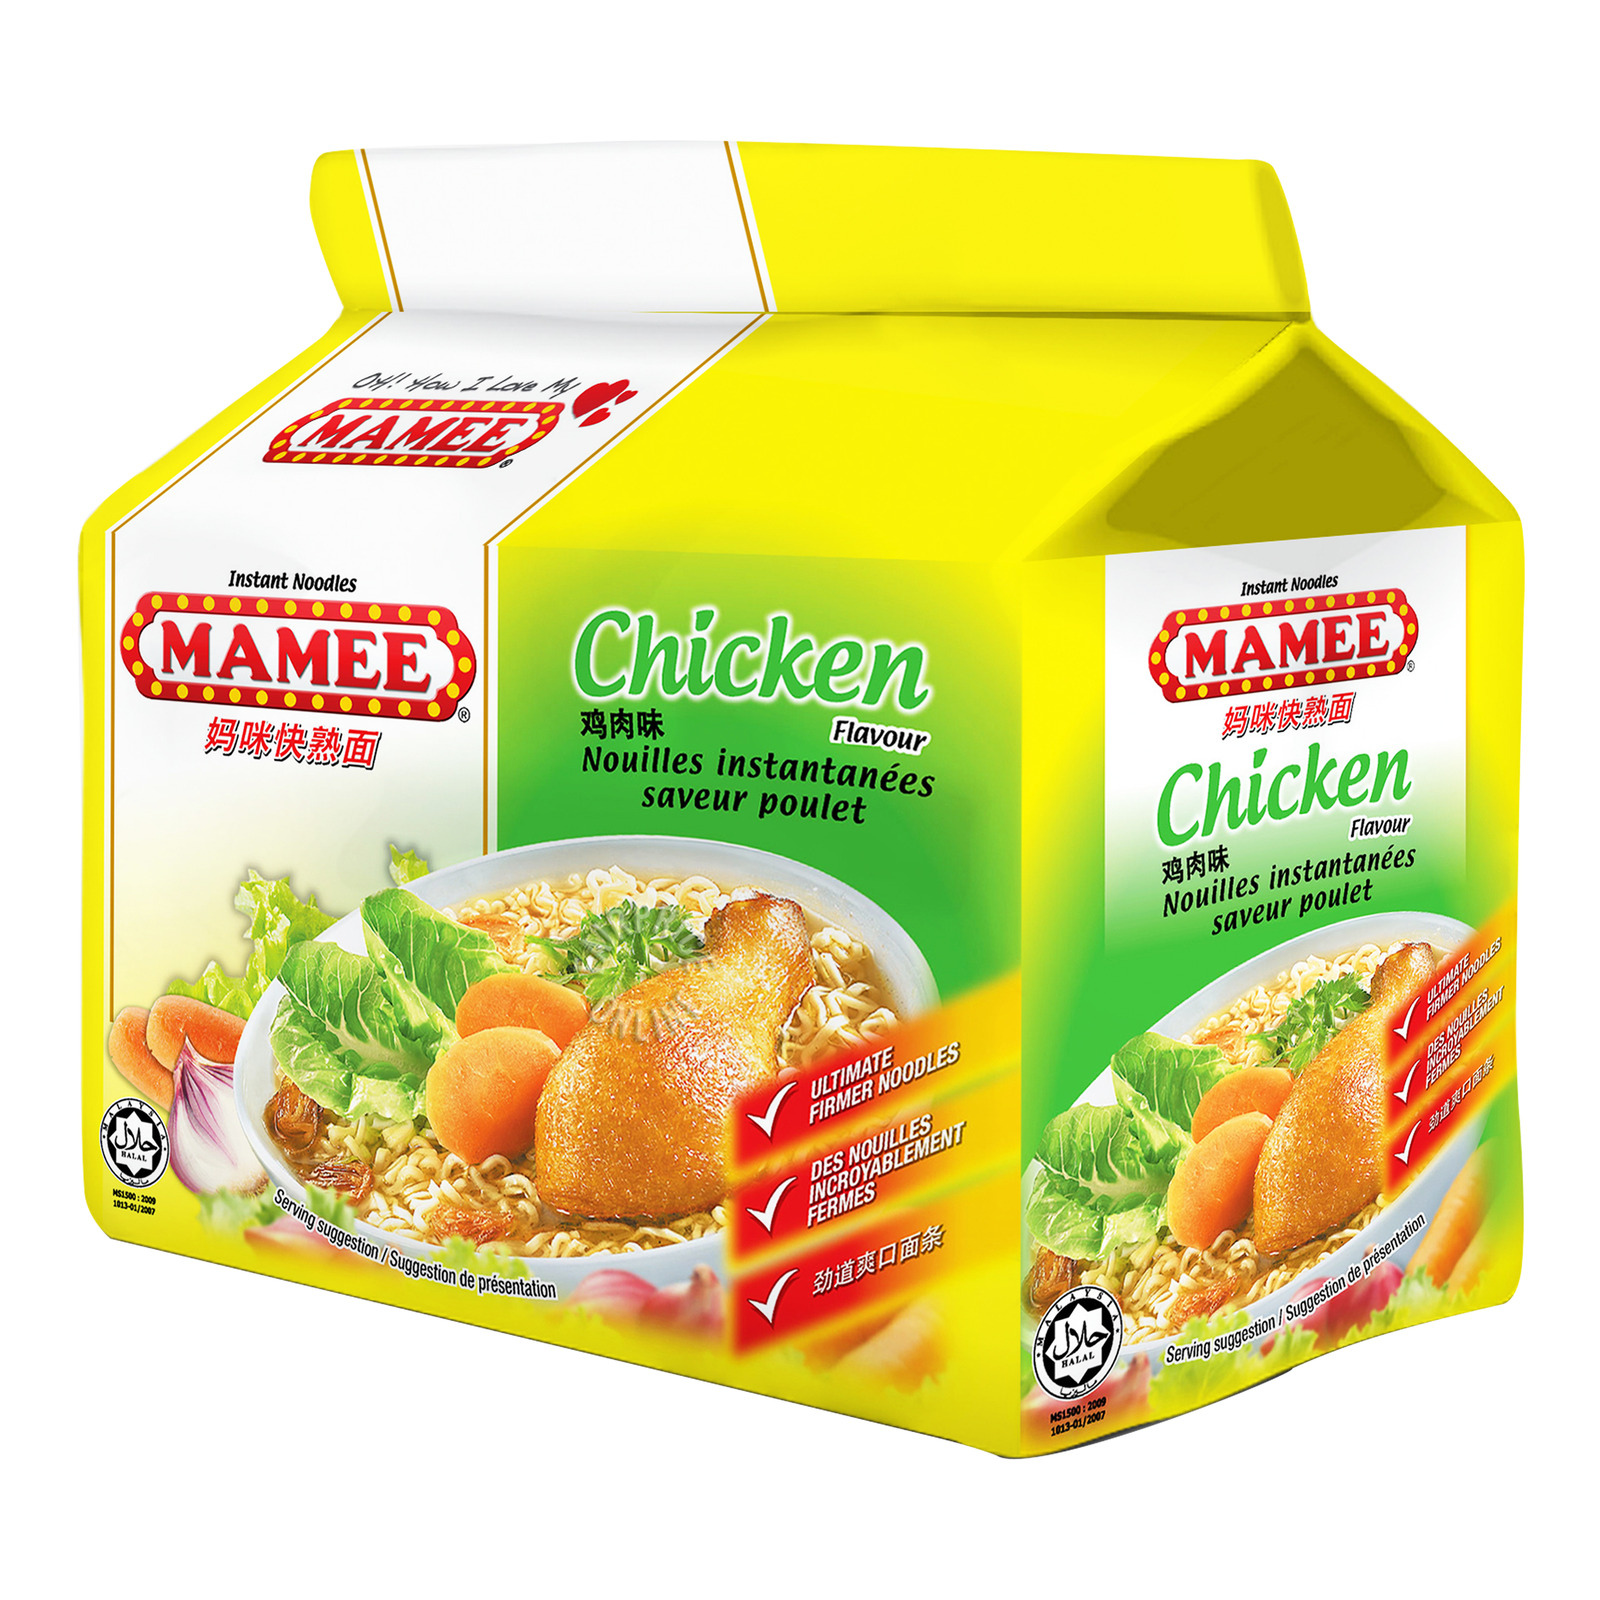 Mamee Instant Noodles - Chicken